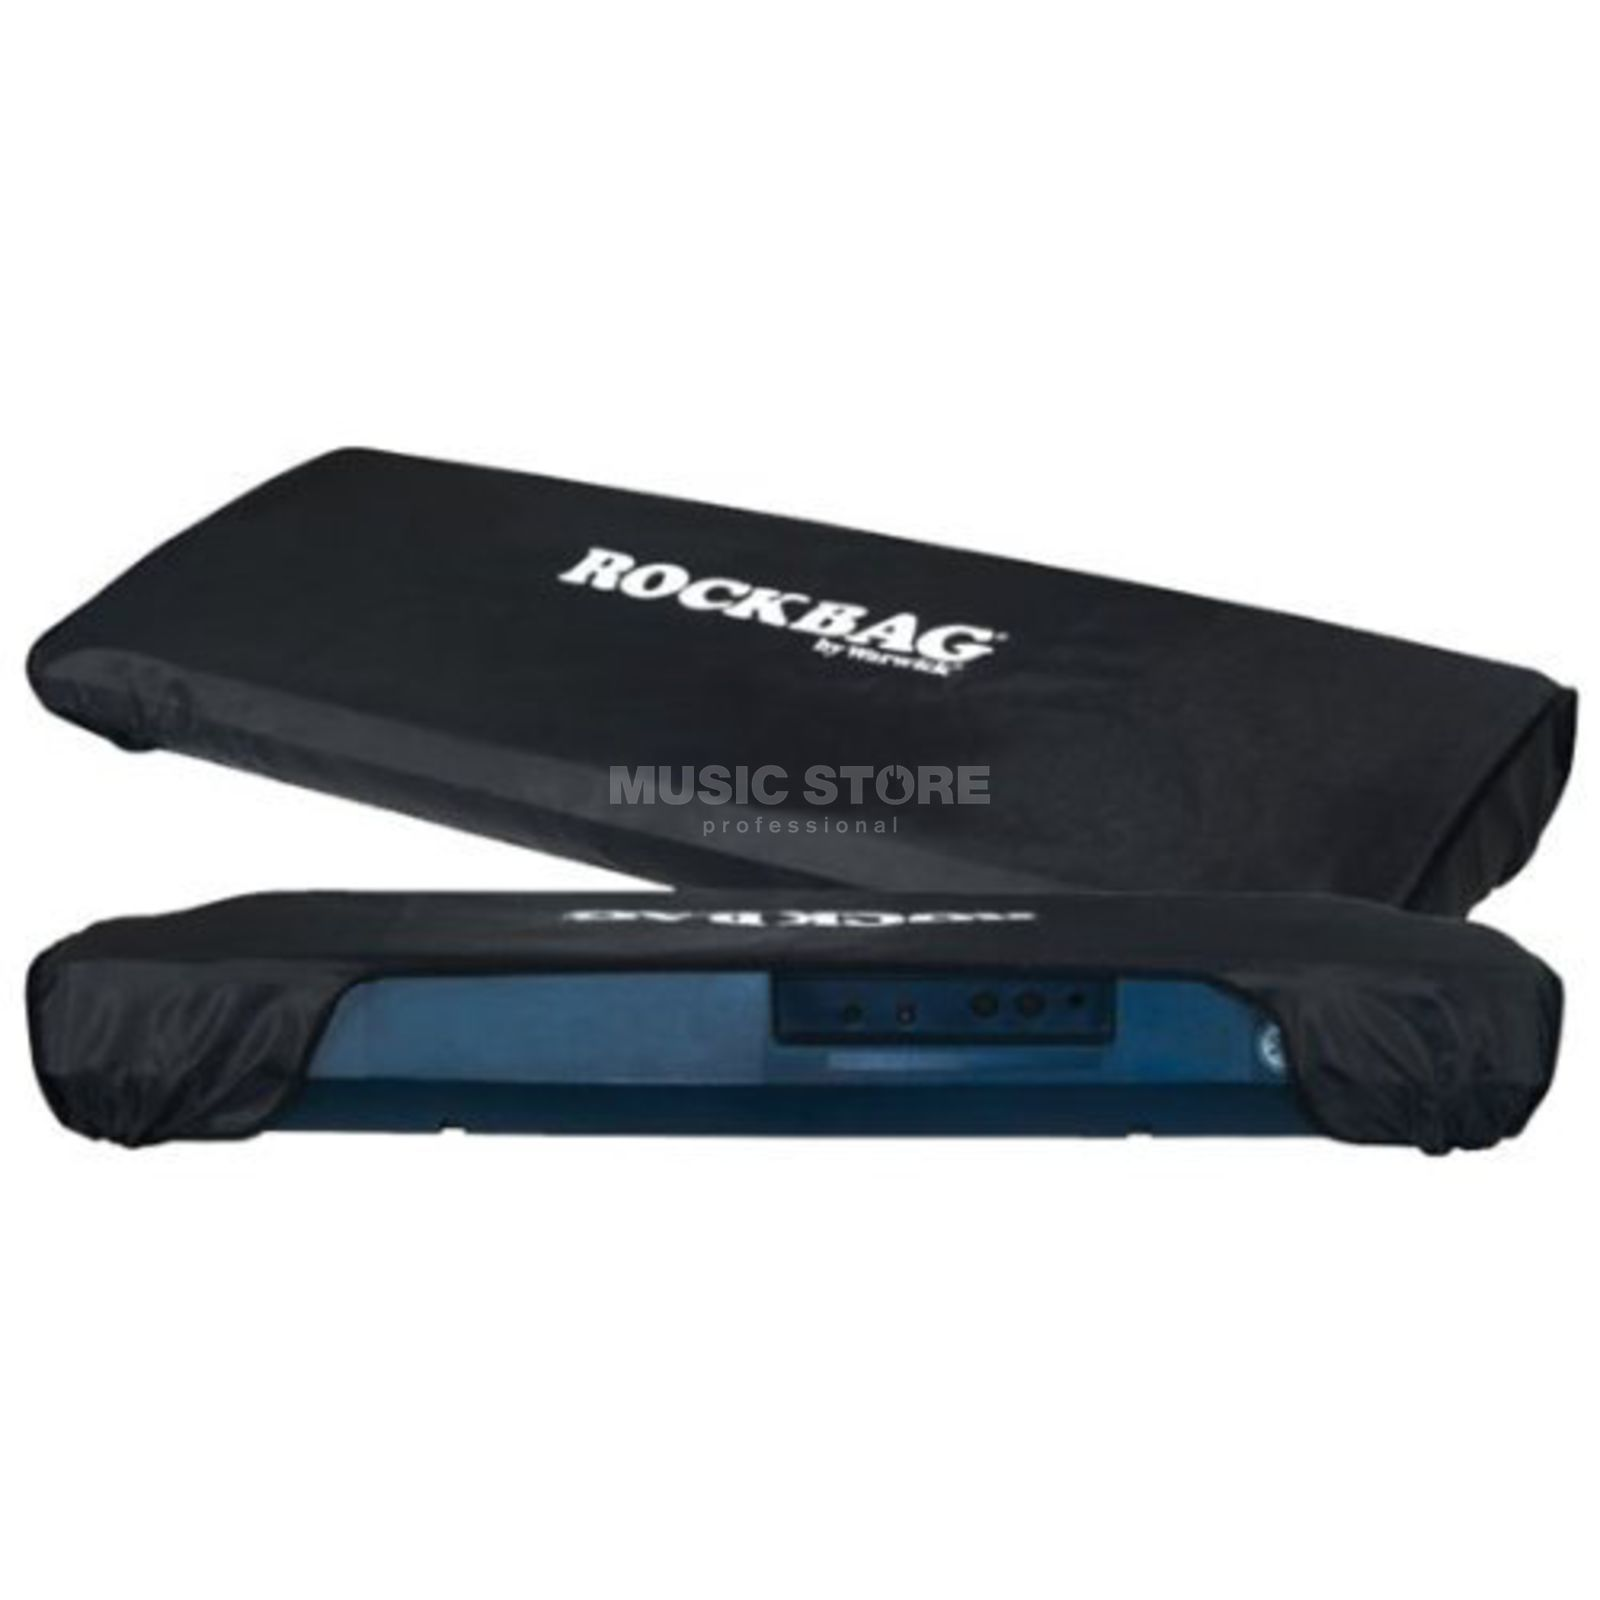 Rockbag Keyboard Dustcover RB21715B Black, 102 x - 39 x - 14cm Produktbillede